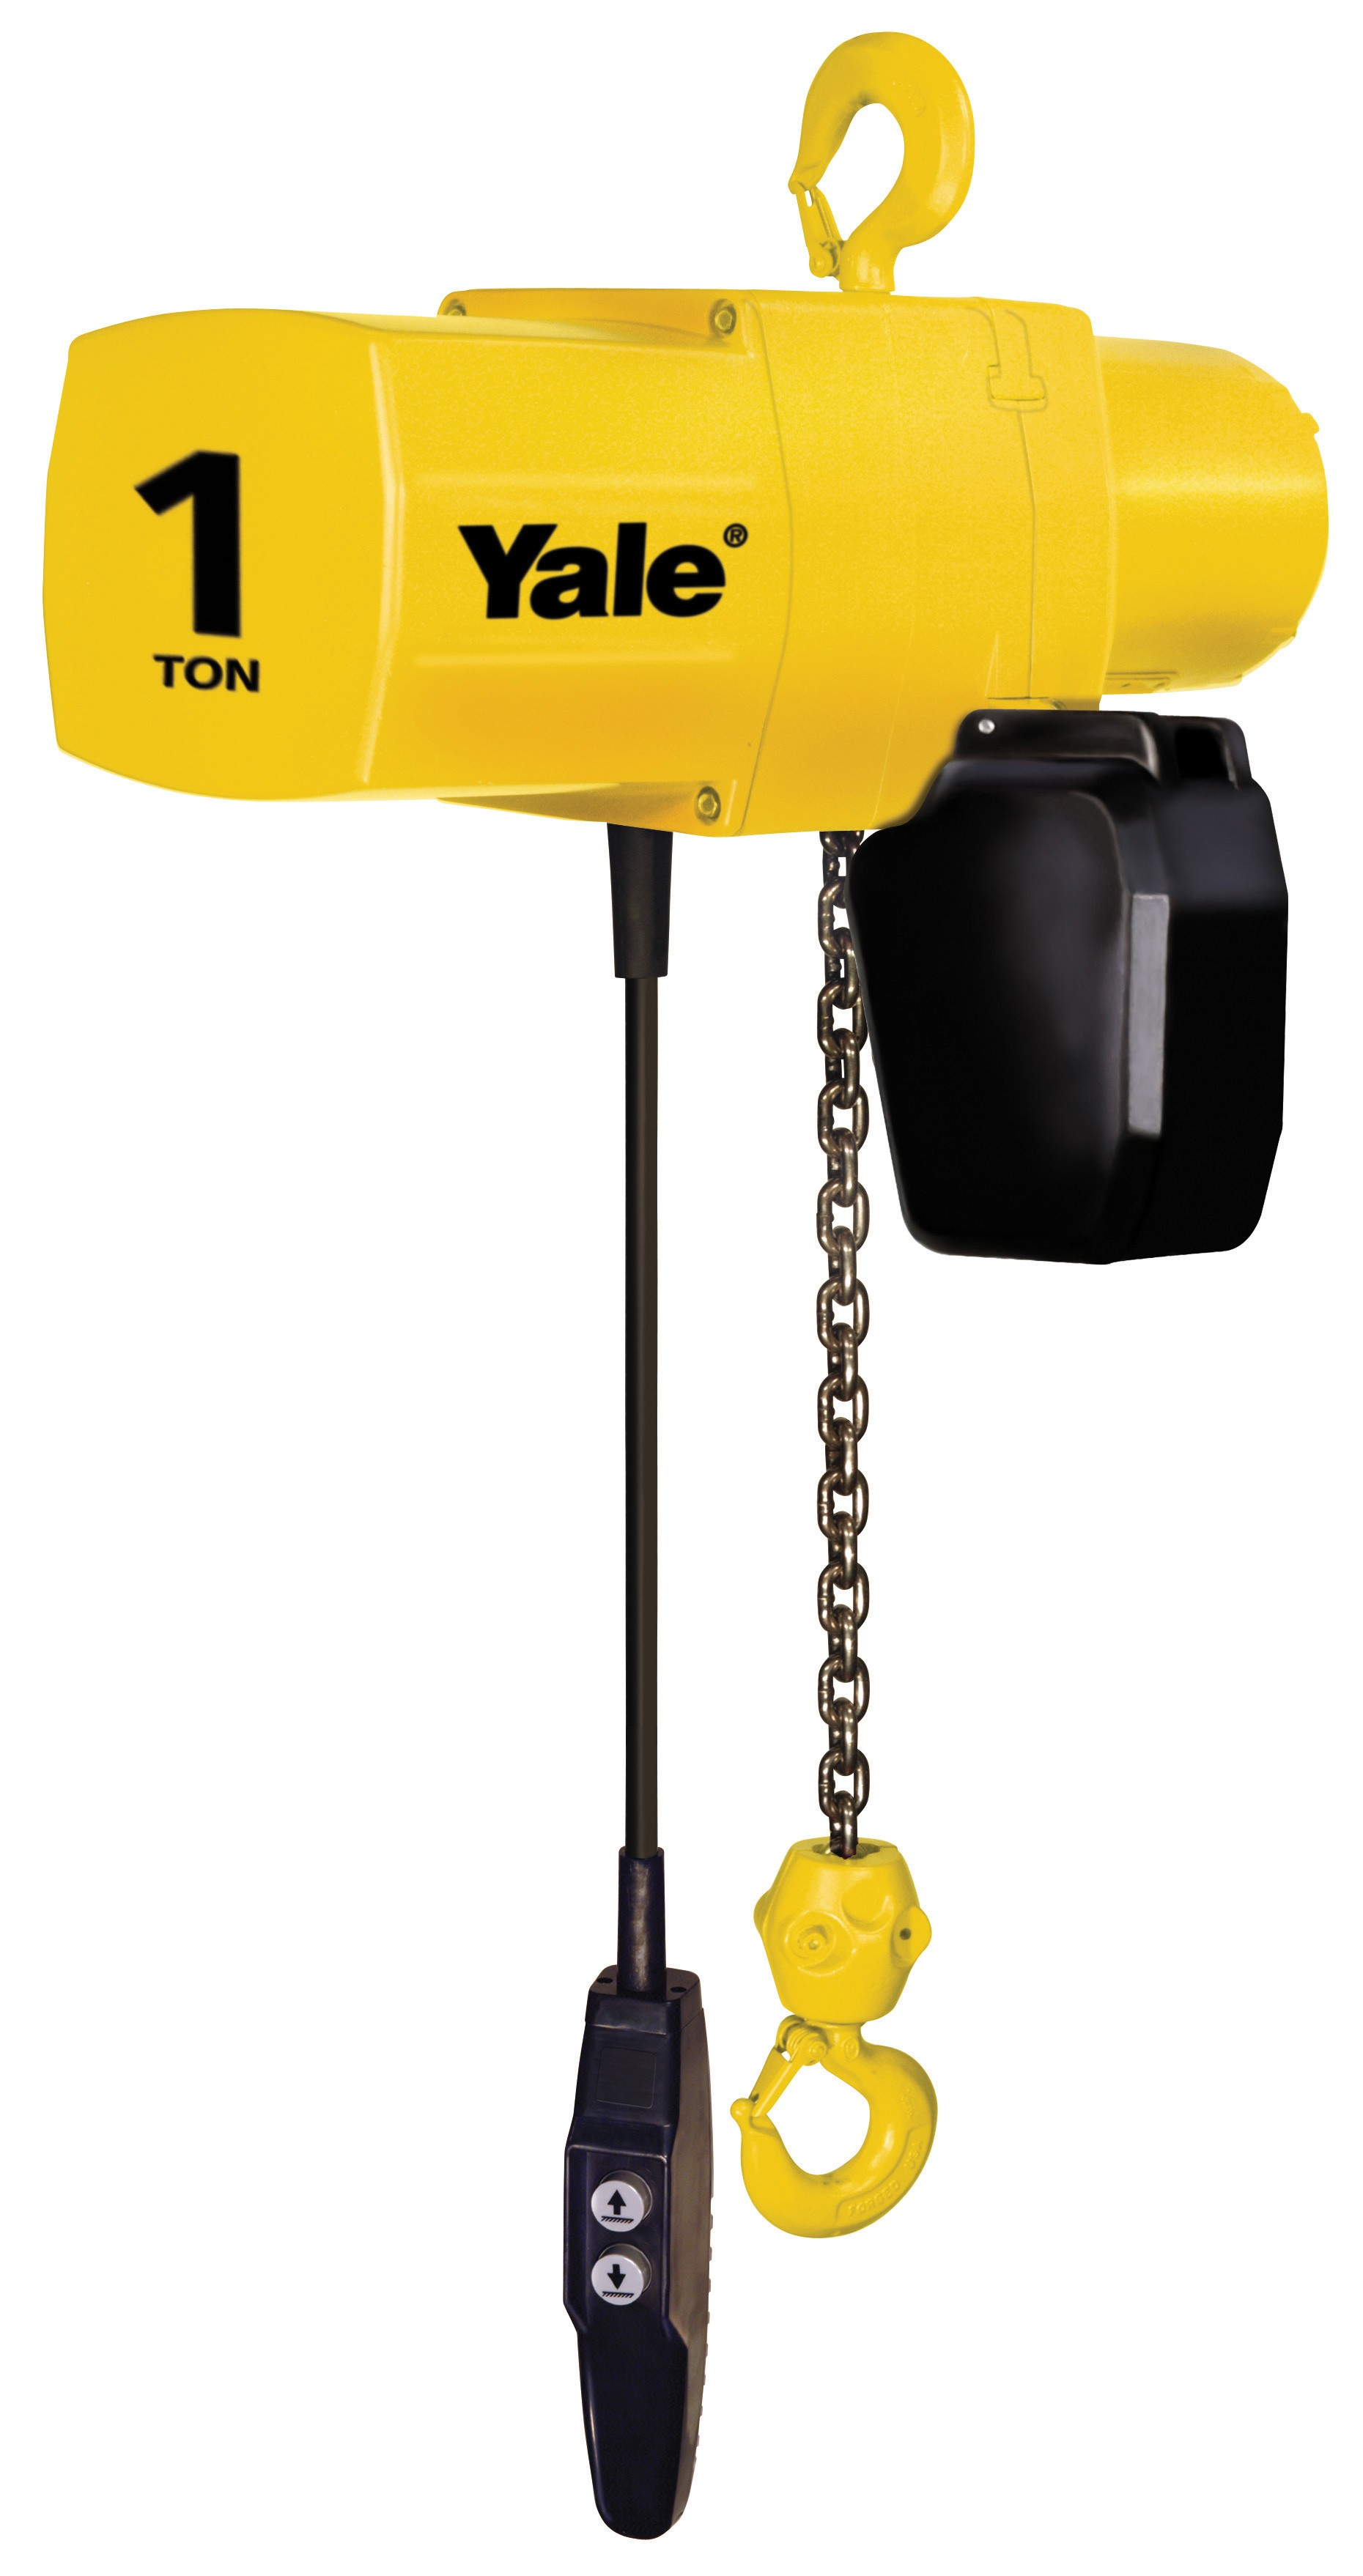 Coffing 1 2 Ton Hoist Parts Diagram Start Building A Wiring Yale Yjl Electric Chain Rh Yalehoist Com 4